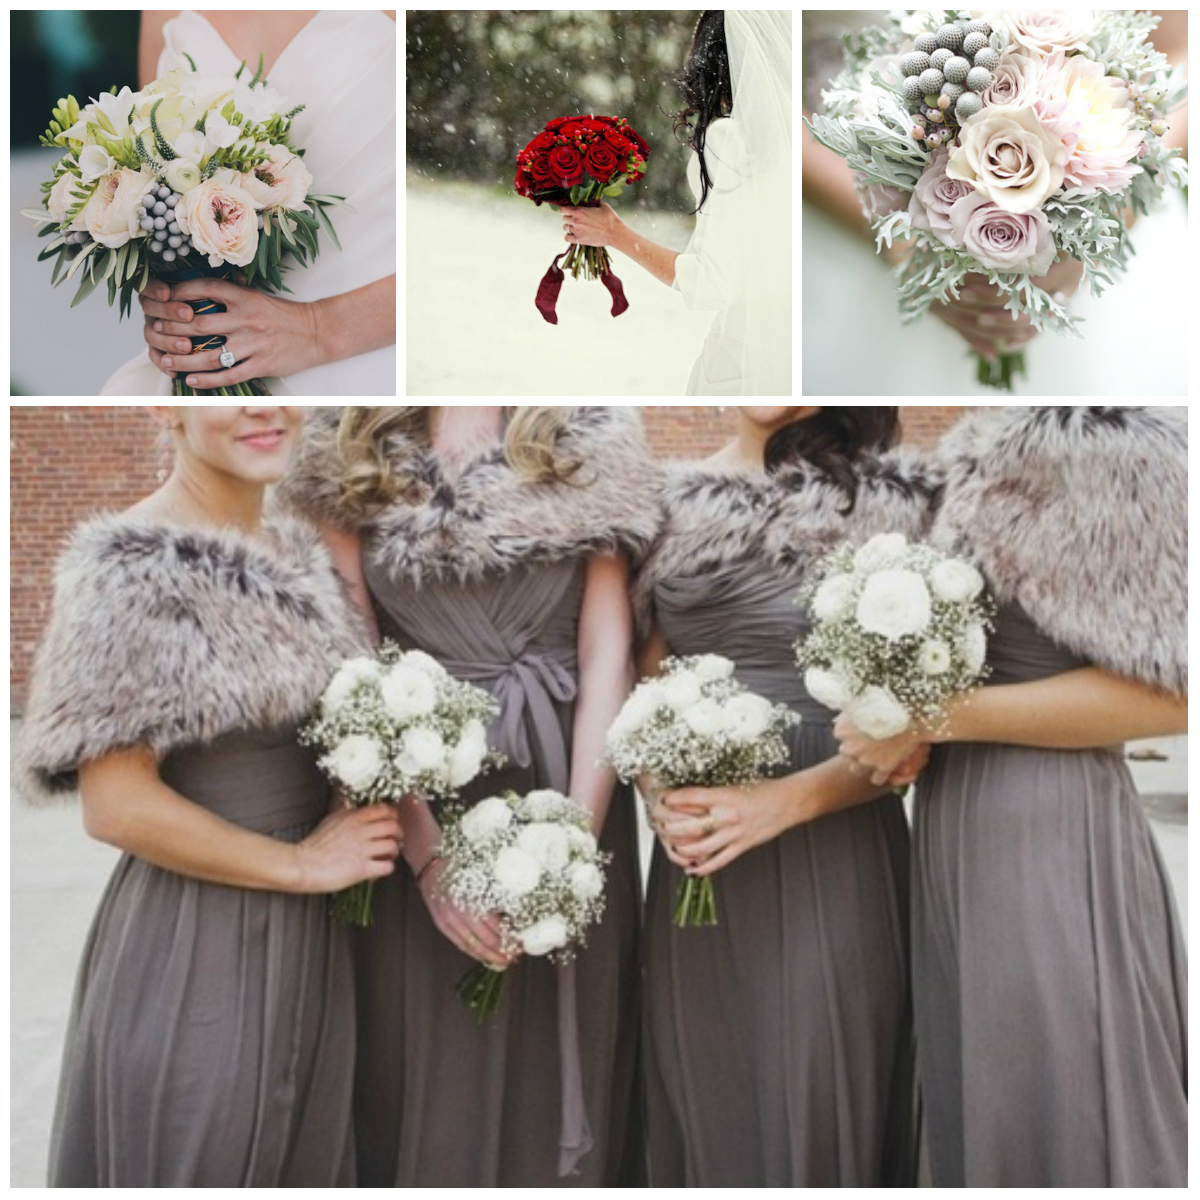 Best Flowers For Winter Wedding: Winter Bride's Bouquet